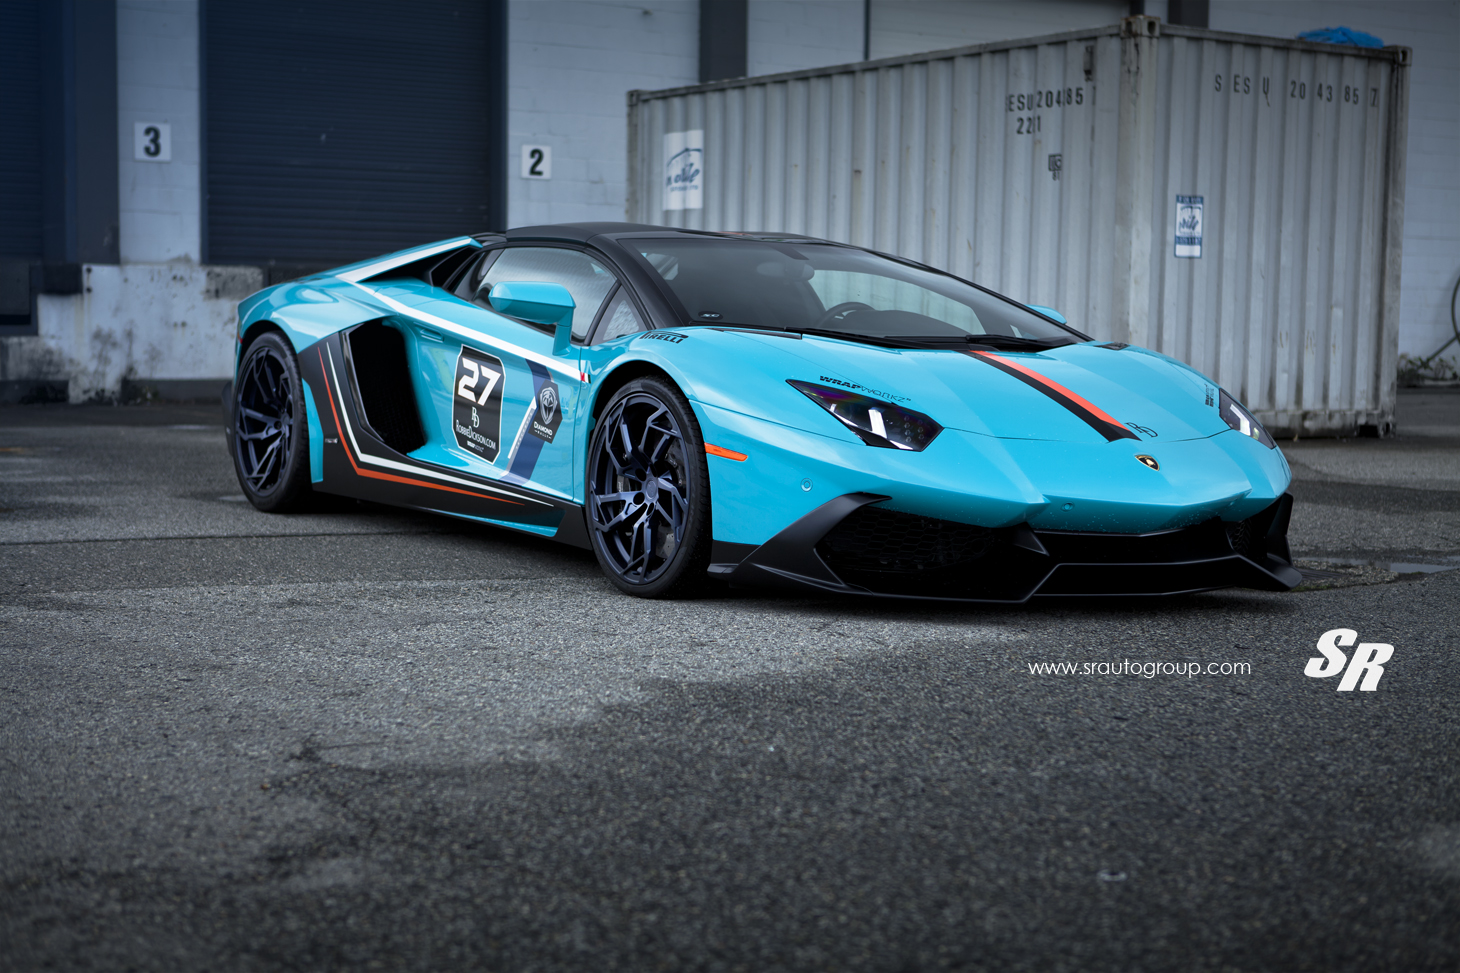 Baby Blue Lamborghini Aventador Gets Pur Wheels Lp720 Body Kit